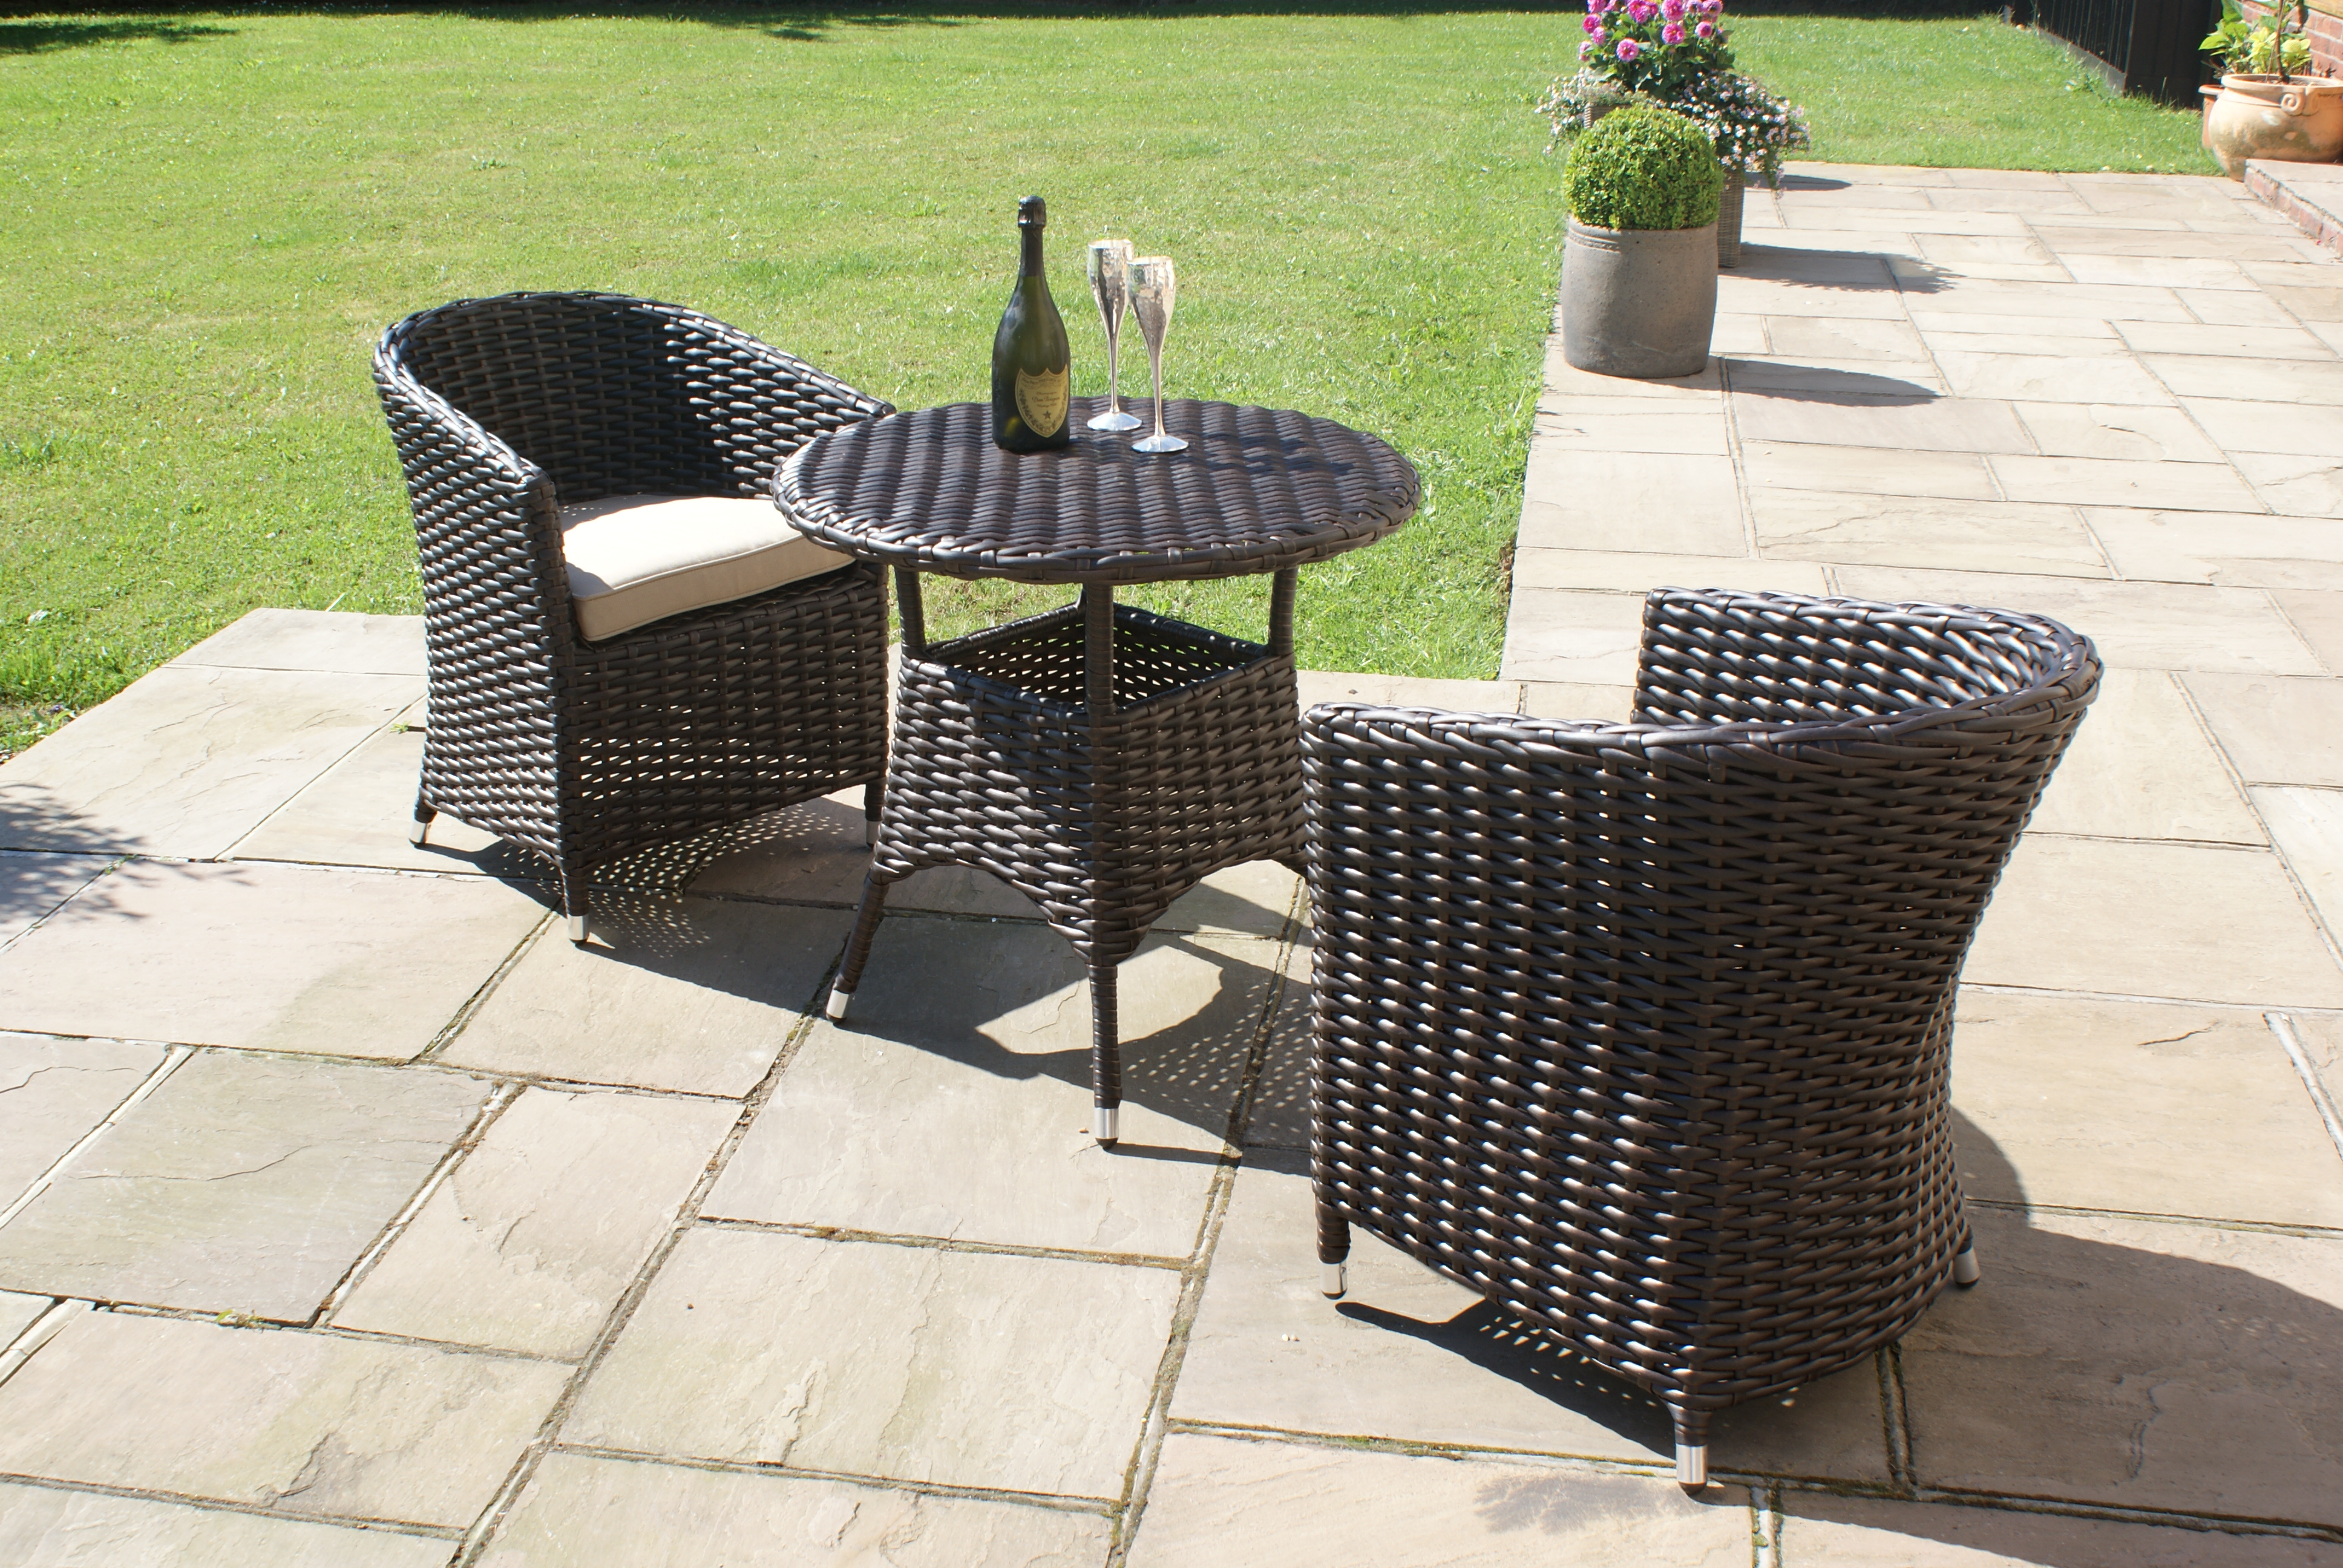 french bistro table and chairs uk grey chair slipcovers sienna rattan garden furniture outdoor small round